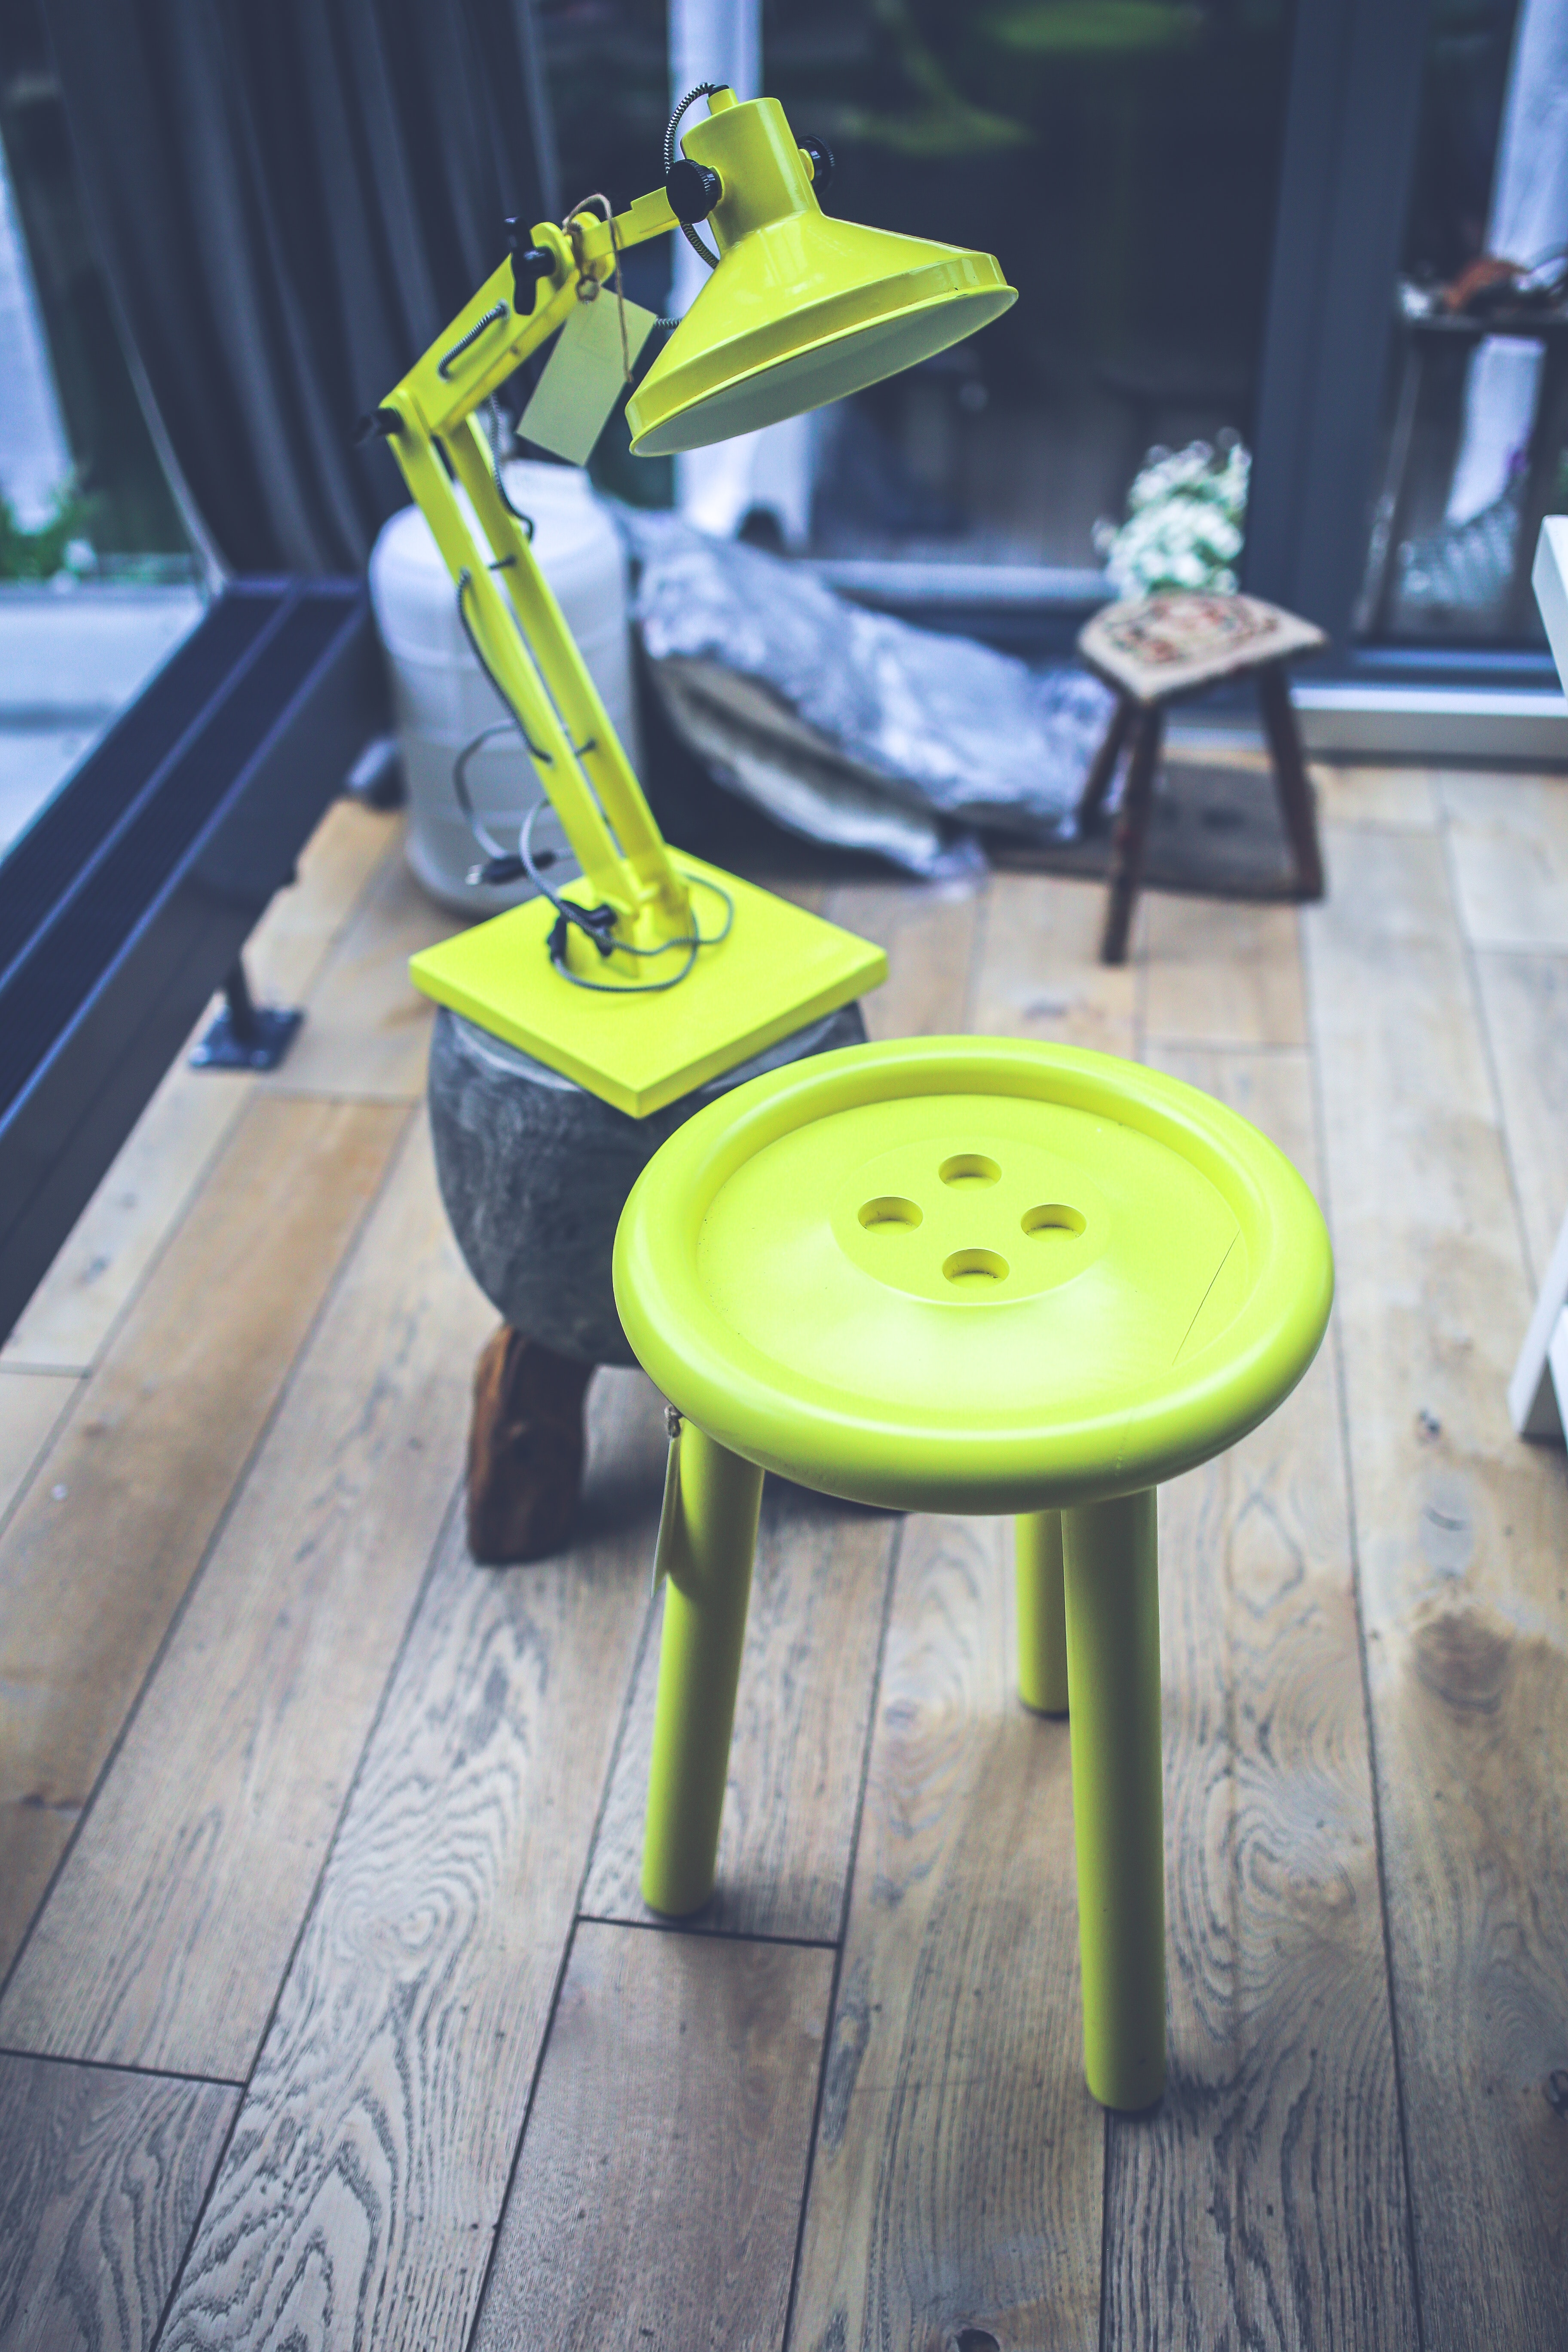 Yellow lamp and little table, Accessories, Outdoors, Wooden, Wood, HQ Photo